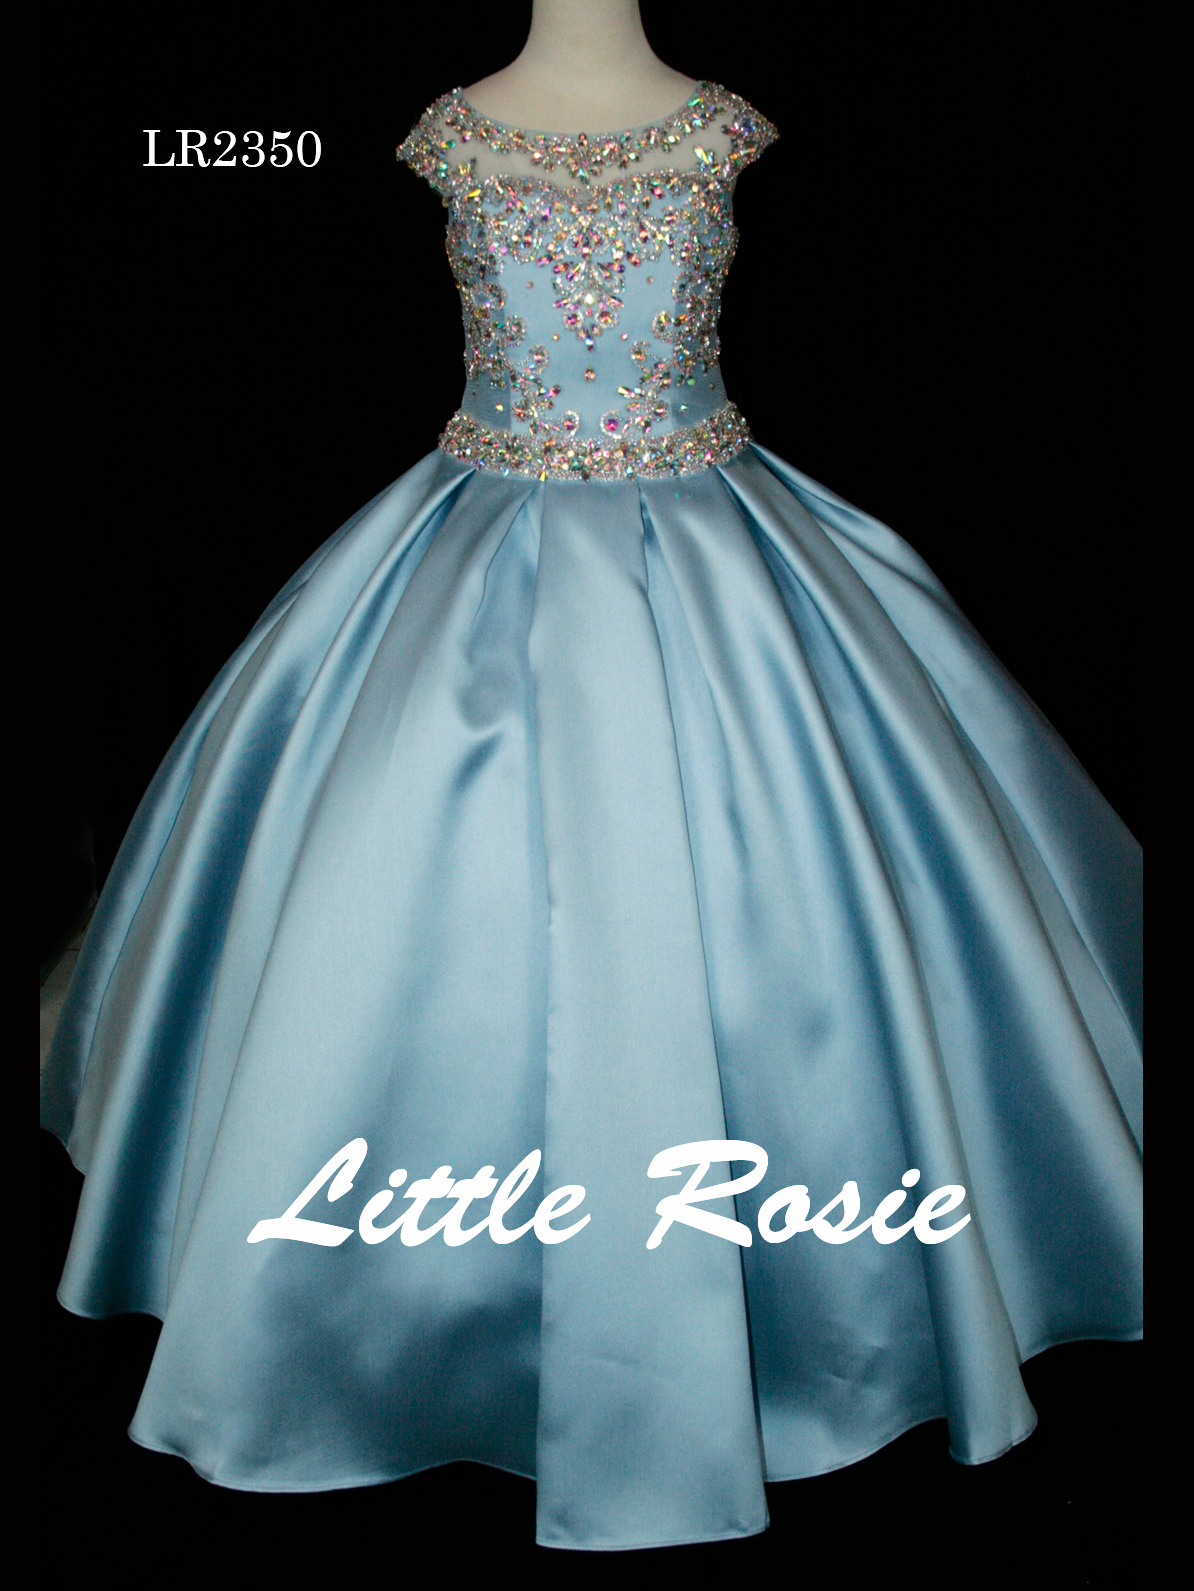 Little Rosie National Rhinestone Pageant Dress LR2350|PageantDesigns.com